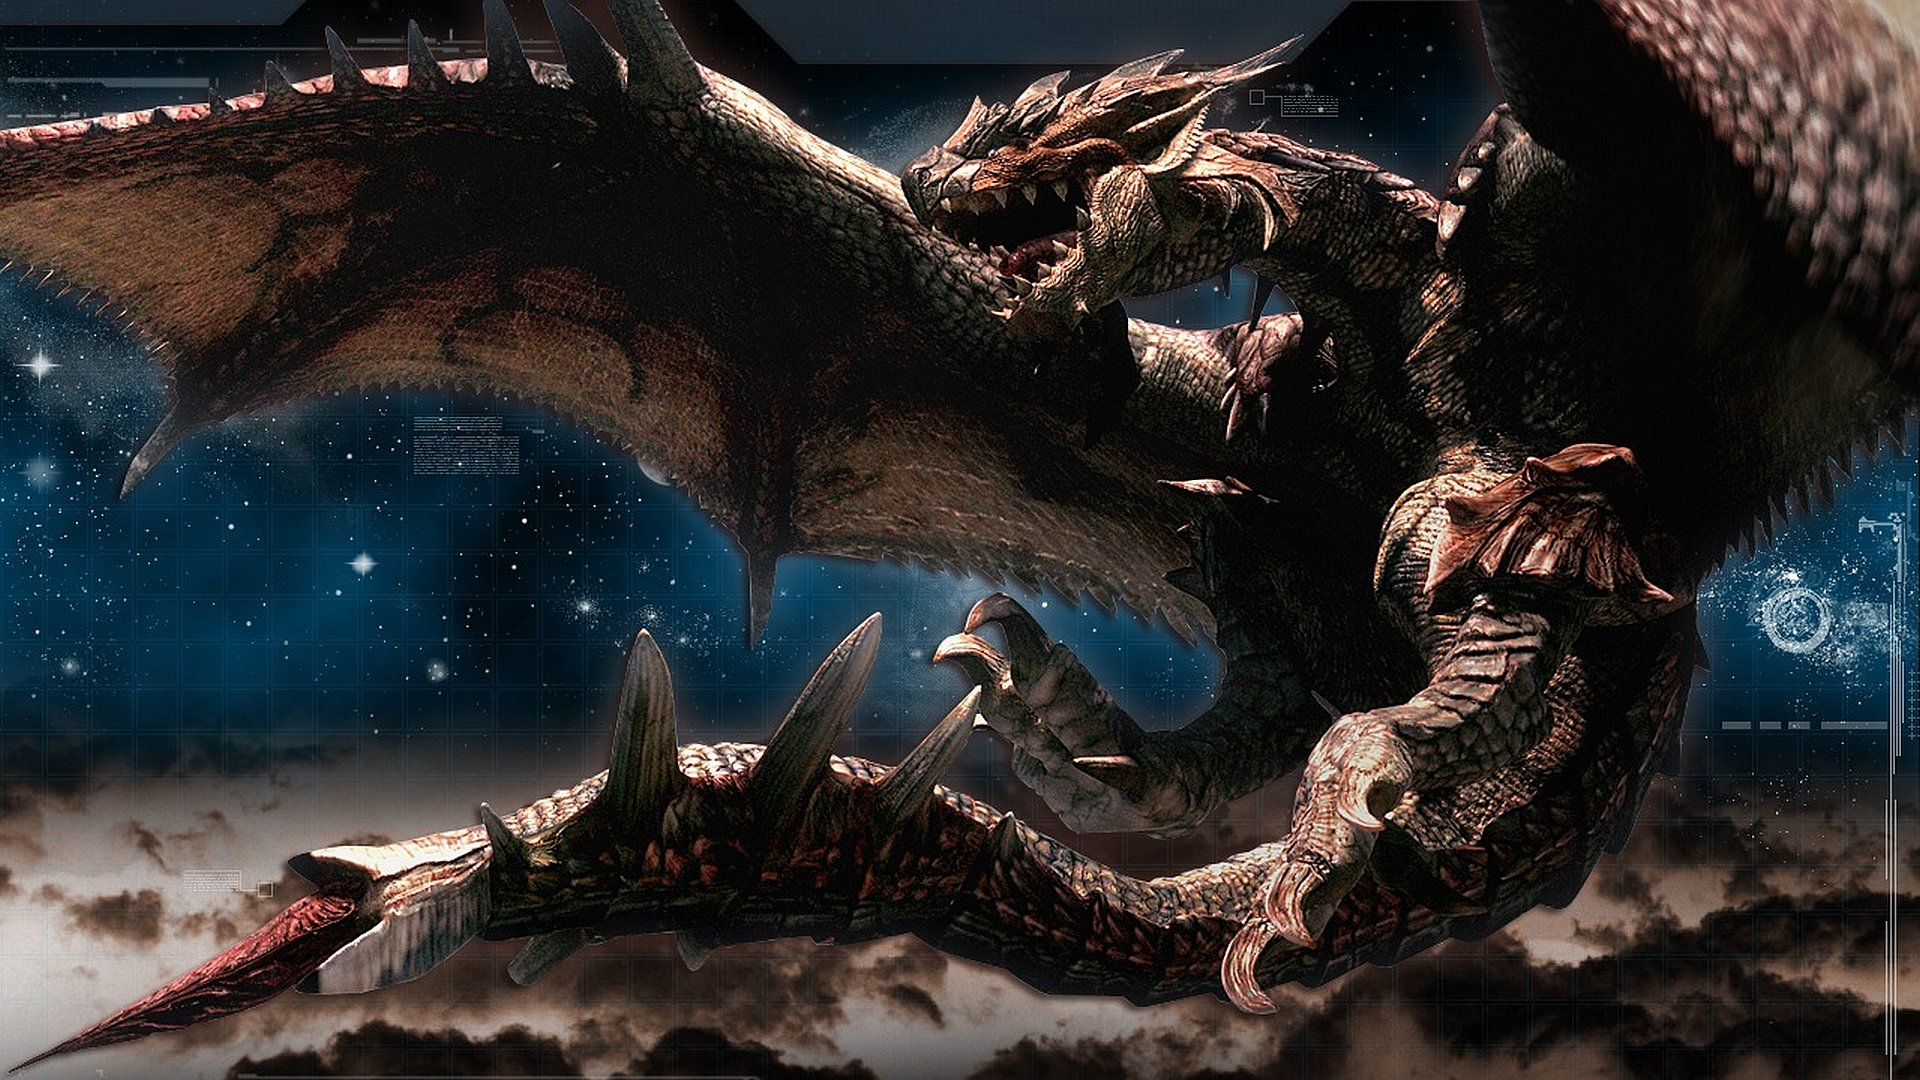 Download Hd 1920x1080 Monster Hunter Pc Wallpaper Id 294469 For Free